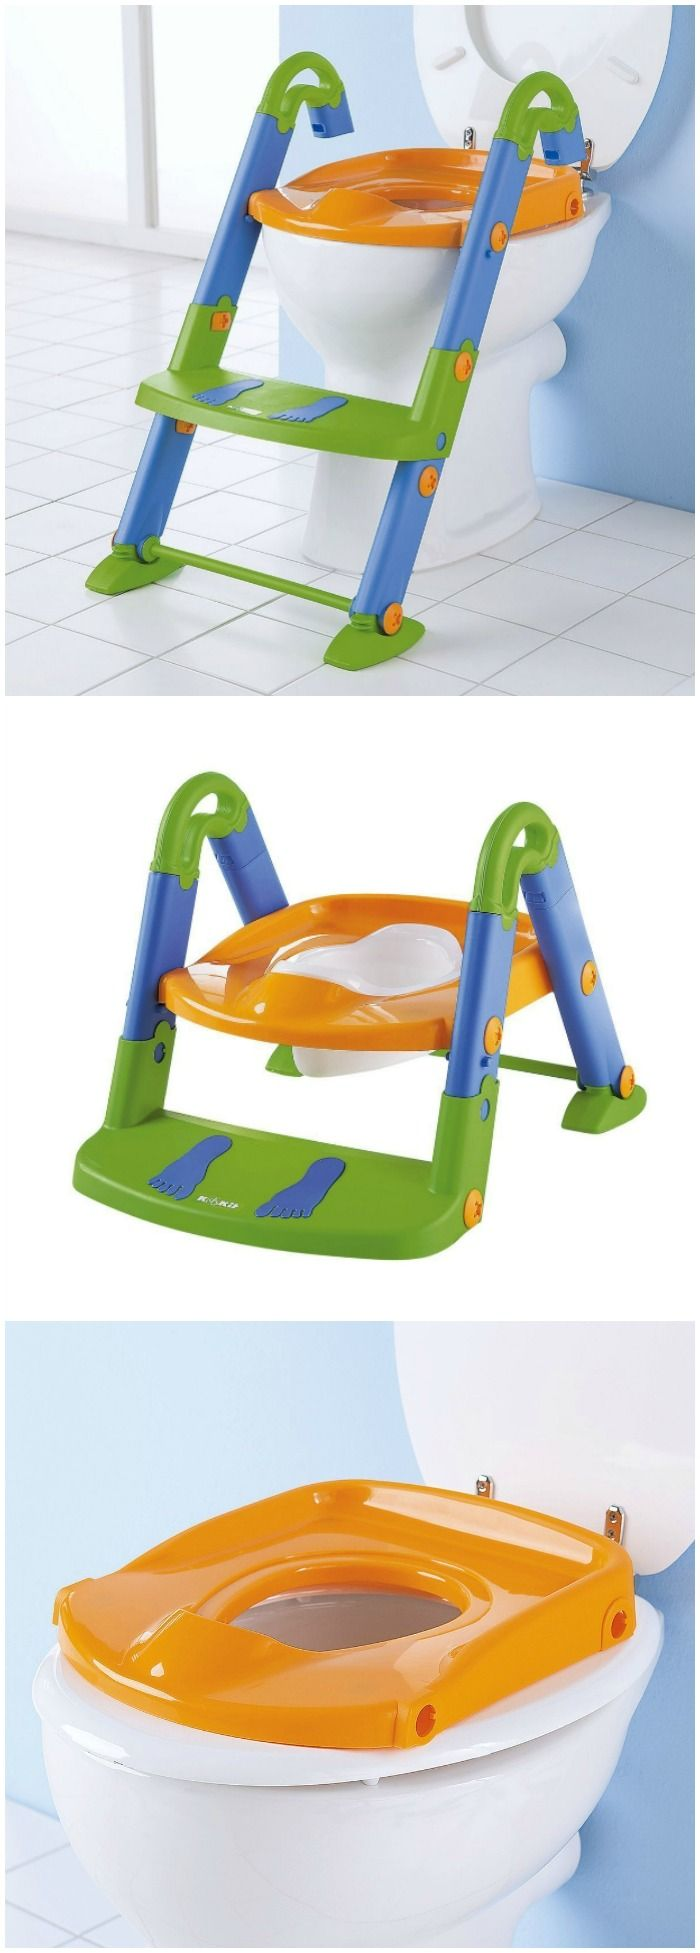 The KidsKit potty training seat features three products in one. It is the portable potty seat that will adjust to every stage of your child's potty seat training. #affiliate